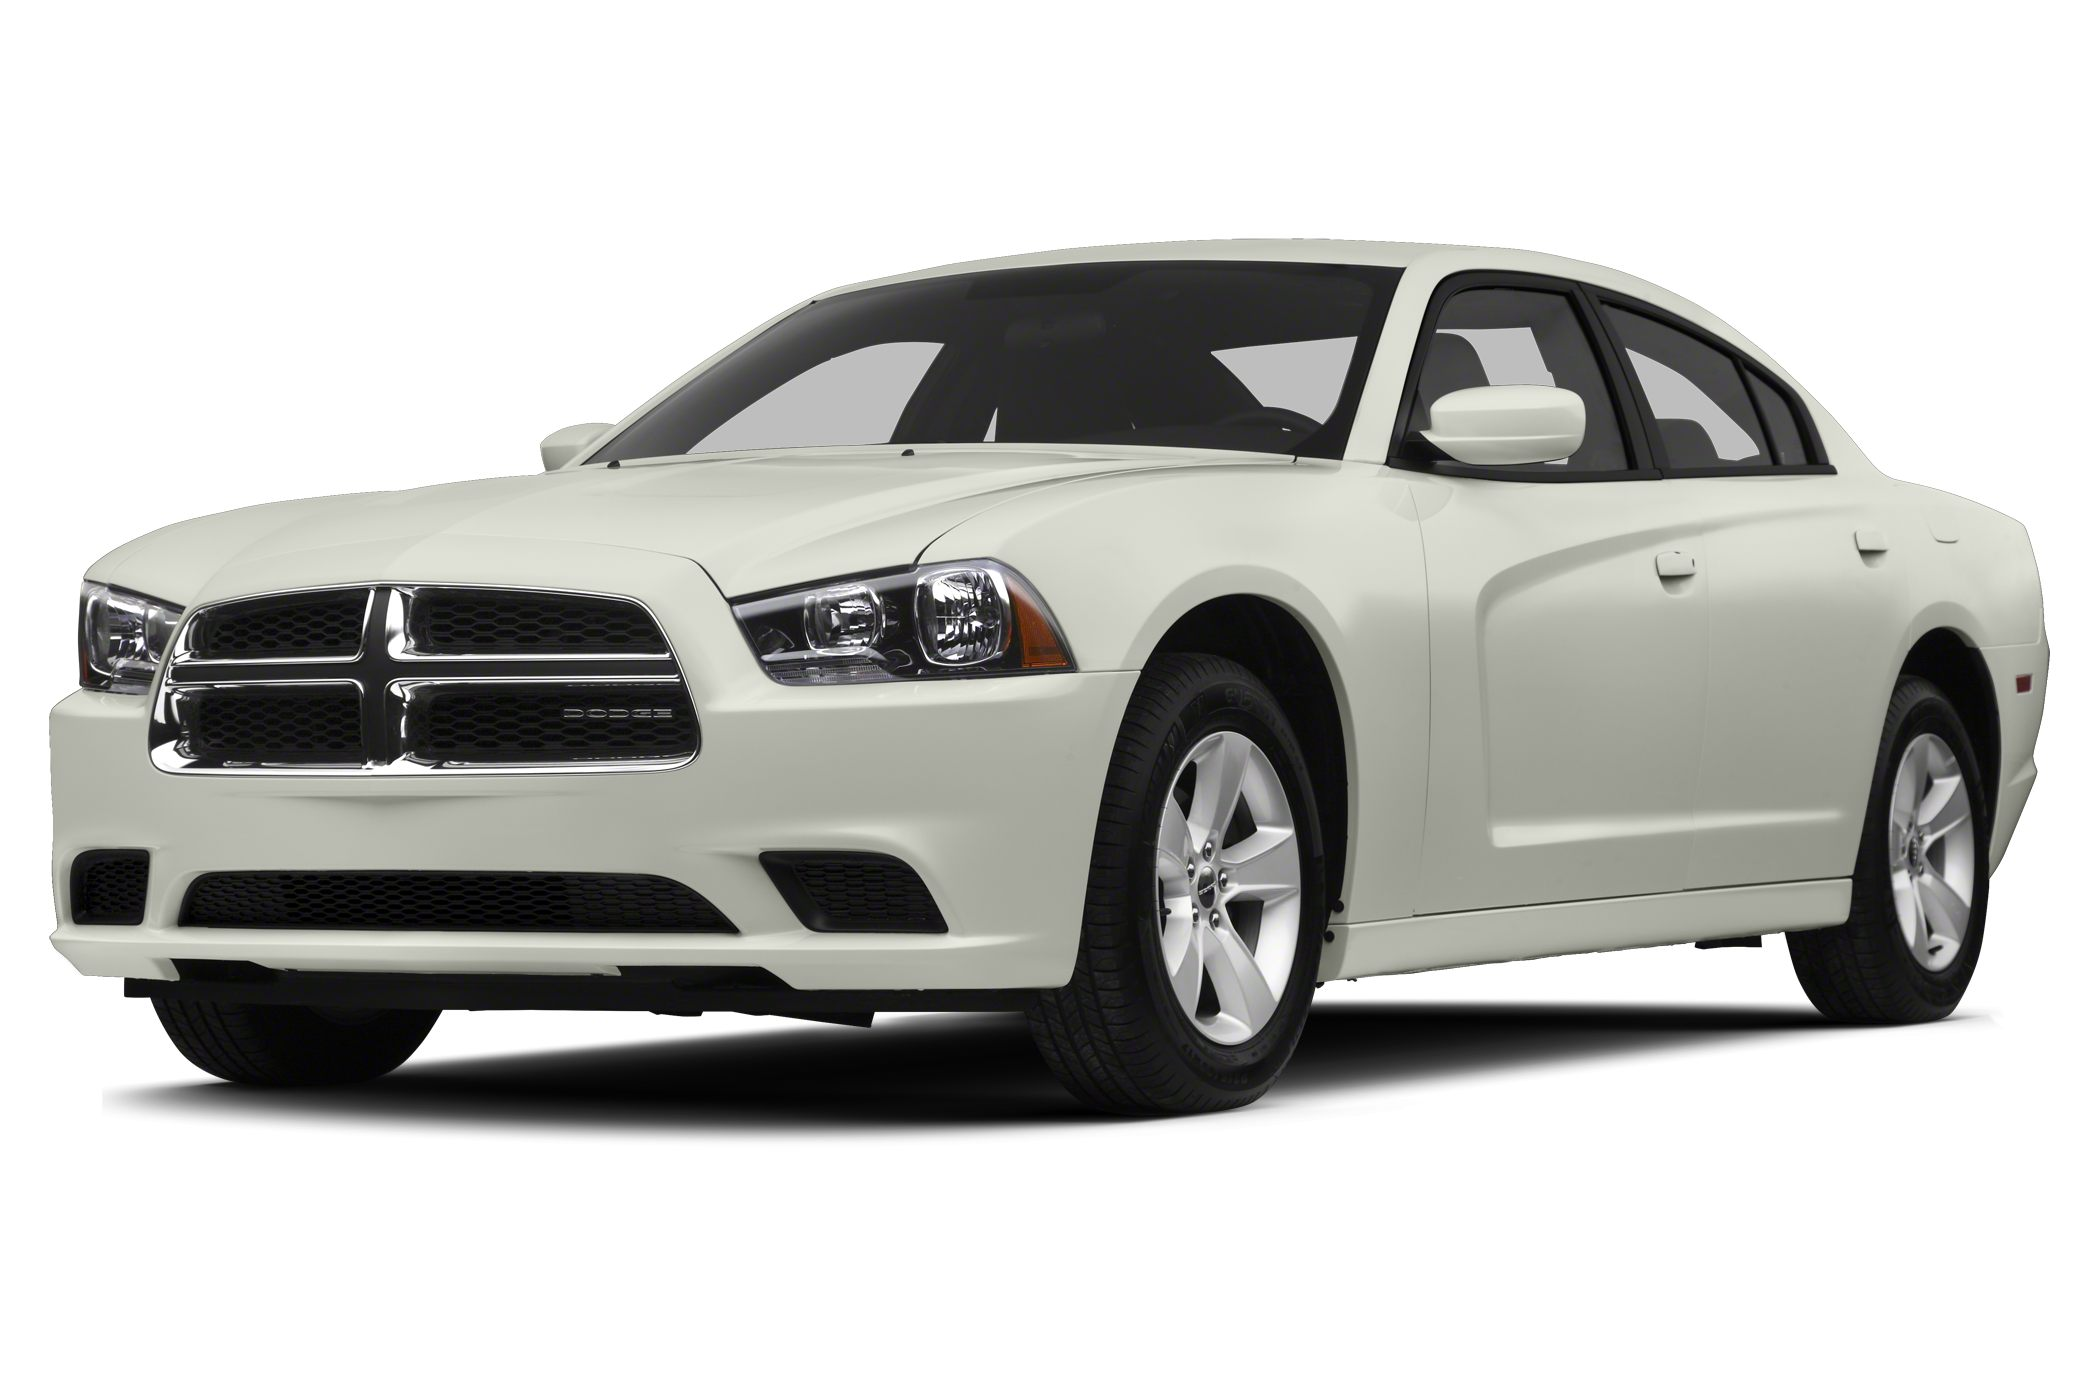 2013 Dodge Charger SE Sedan for sale in Chicago for $15,900 with 52,261 miles.